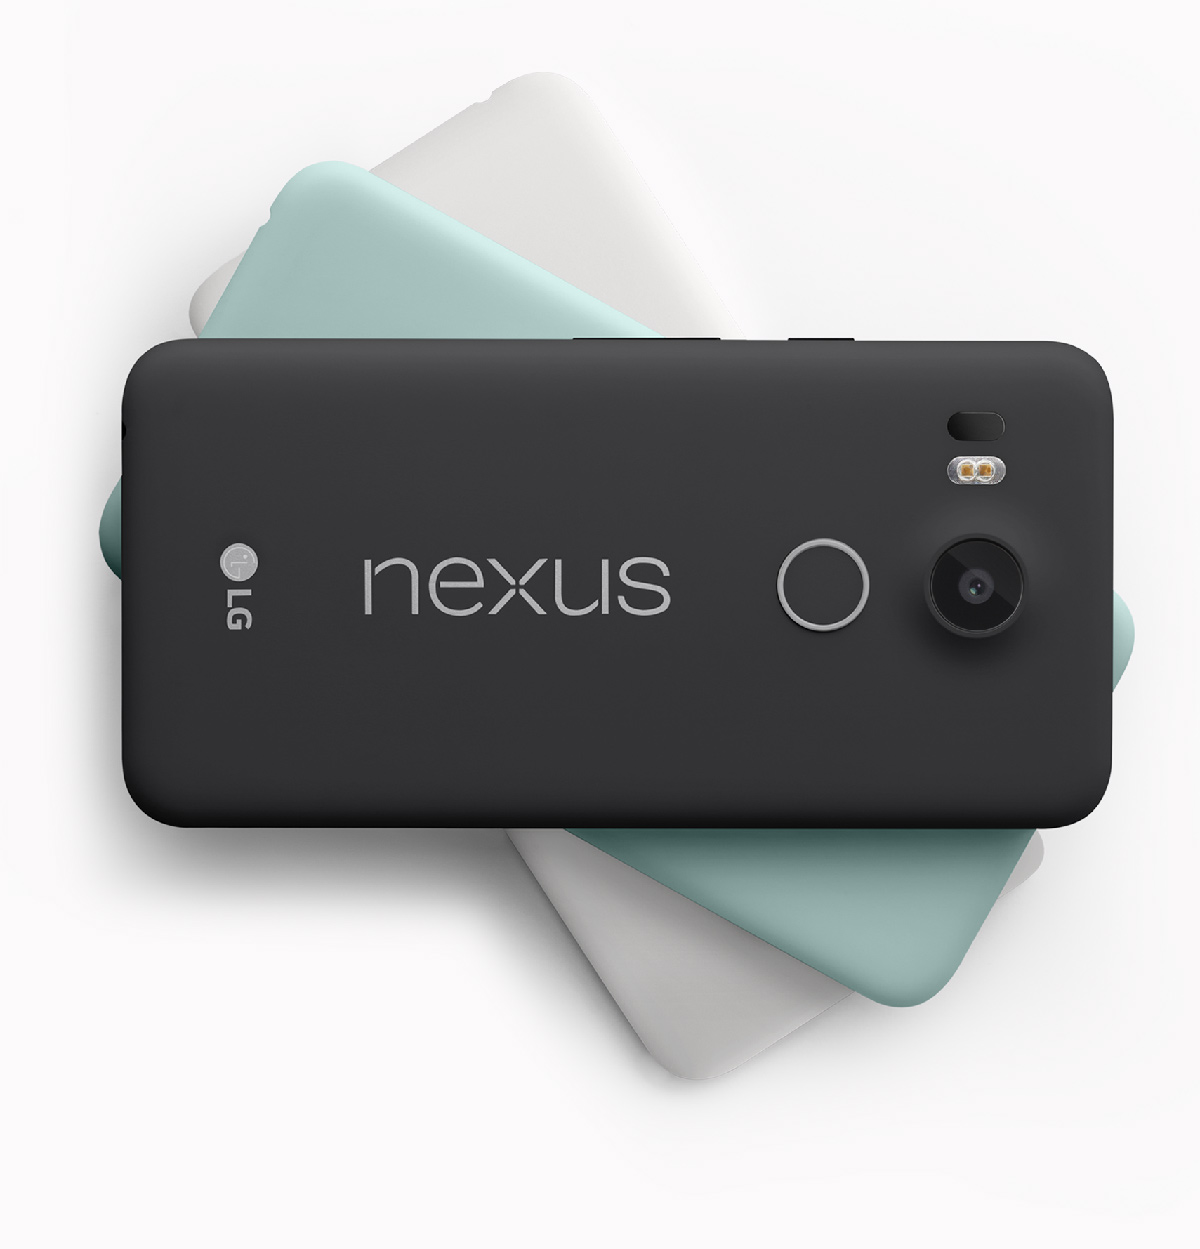 The LG Nexus 5X supports Google's Project Fi mobile service